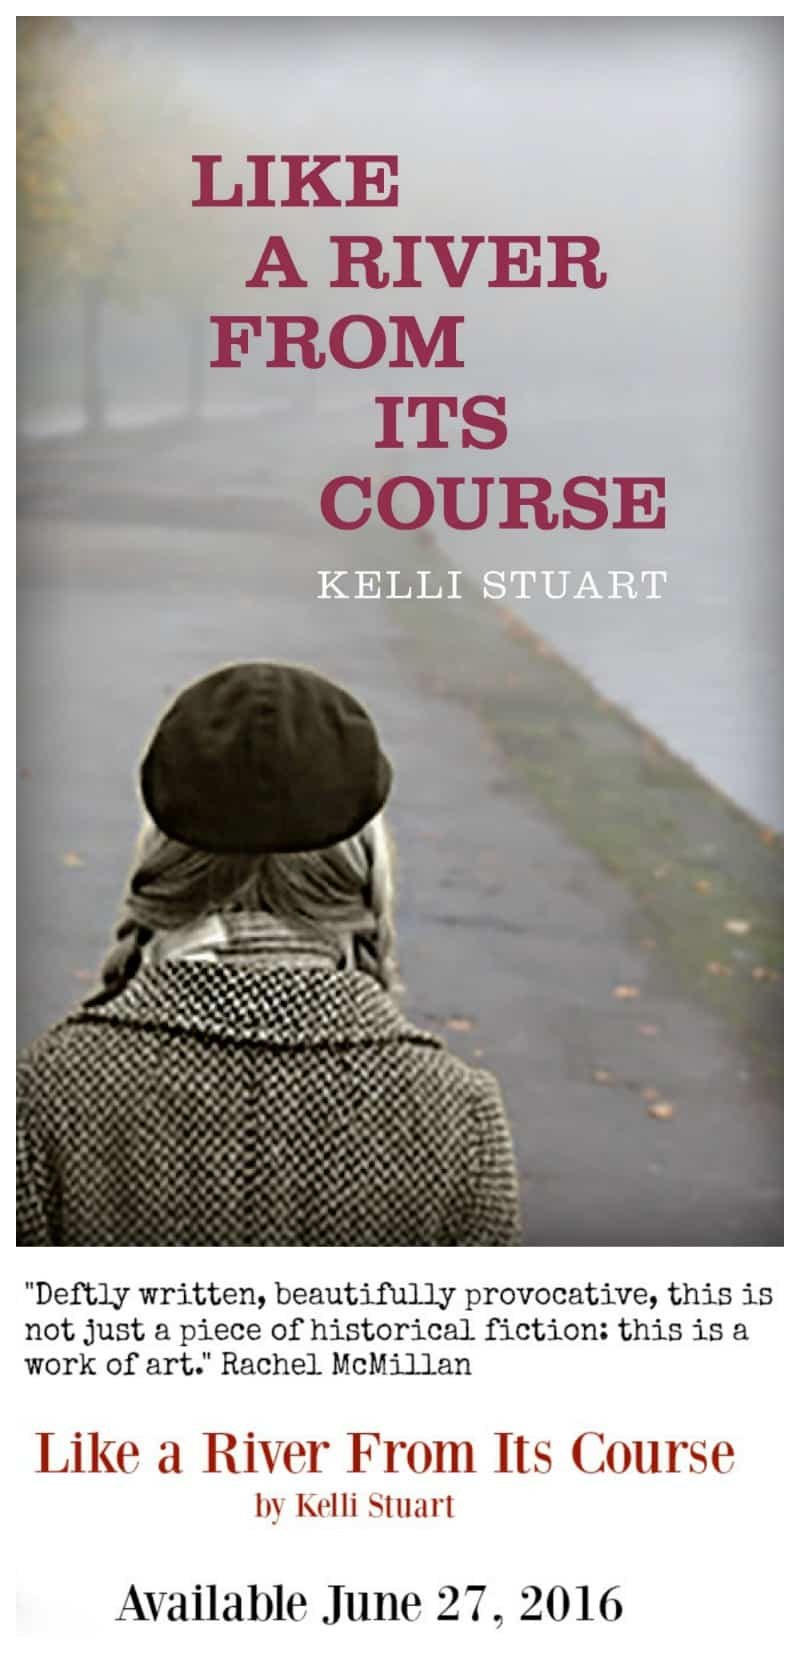 Like a River From Its Course - New Novel by Kelli Stuart